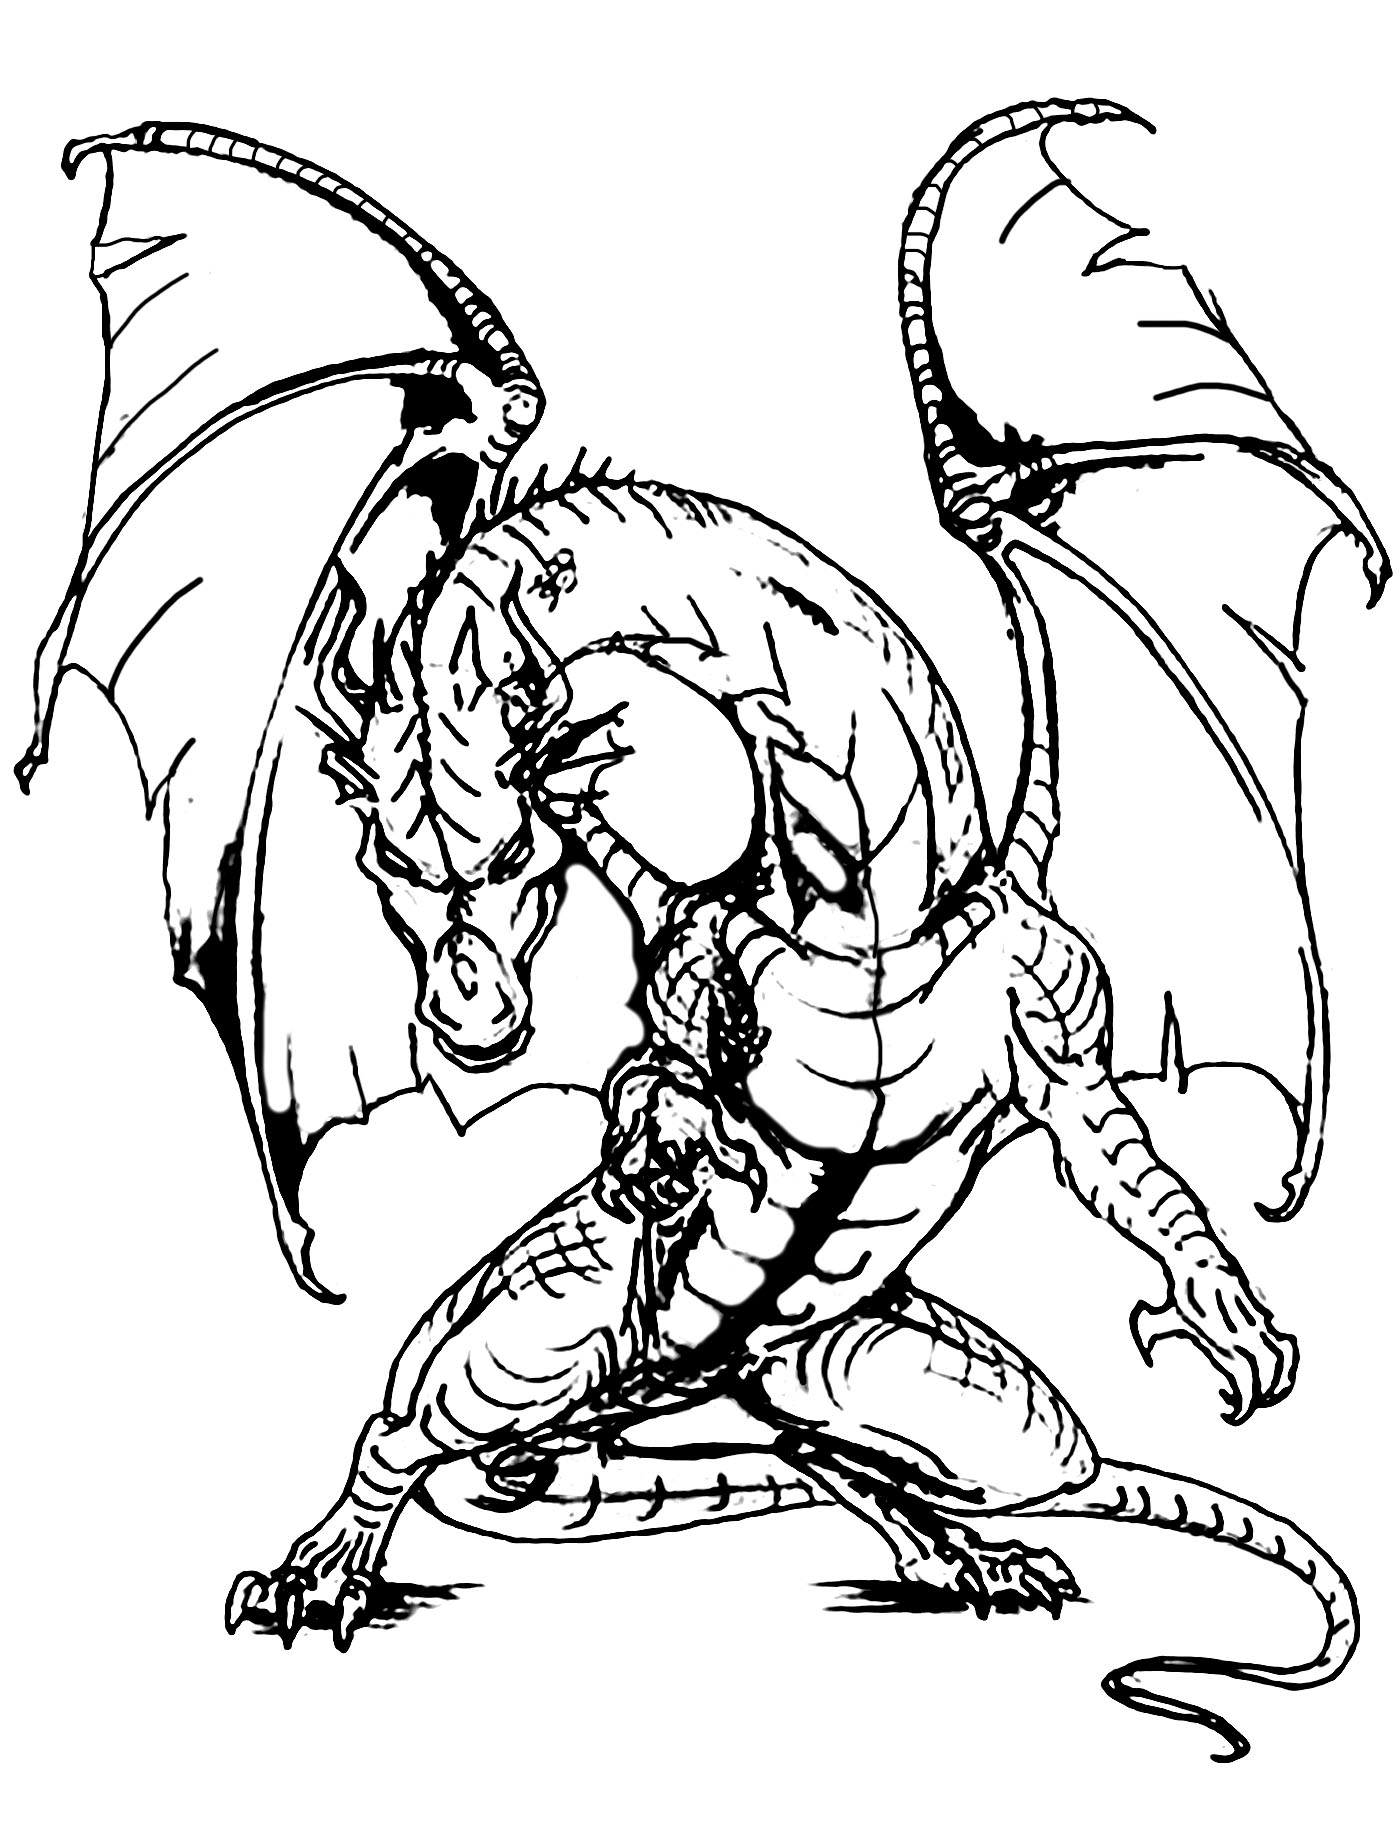 coloring page giant dragon impressive and scary dragon